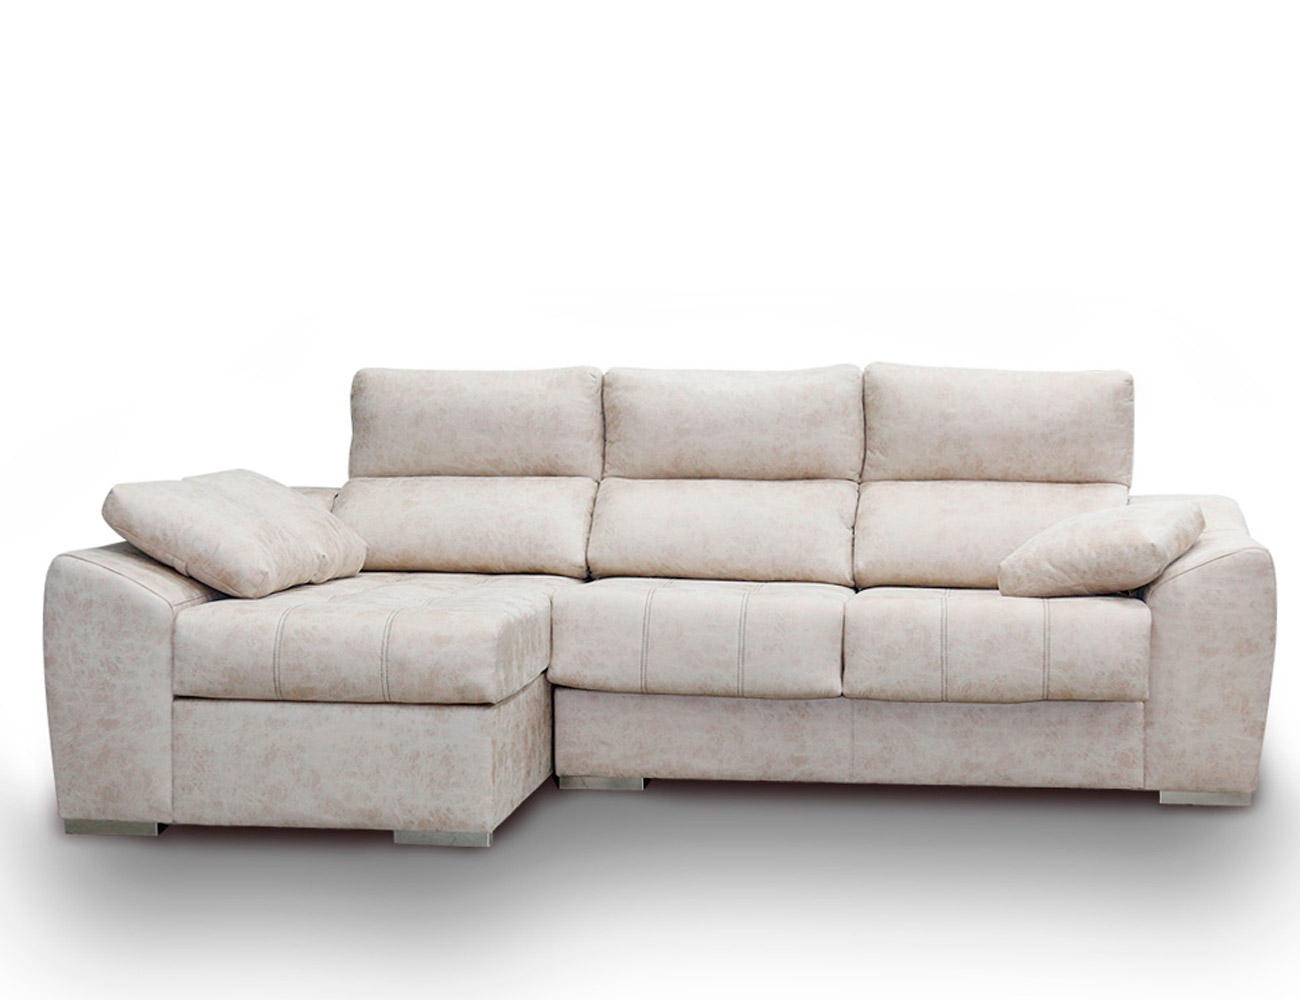 Sofa chaiselongue anti manchas beig blanco2